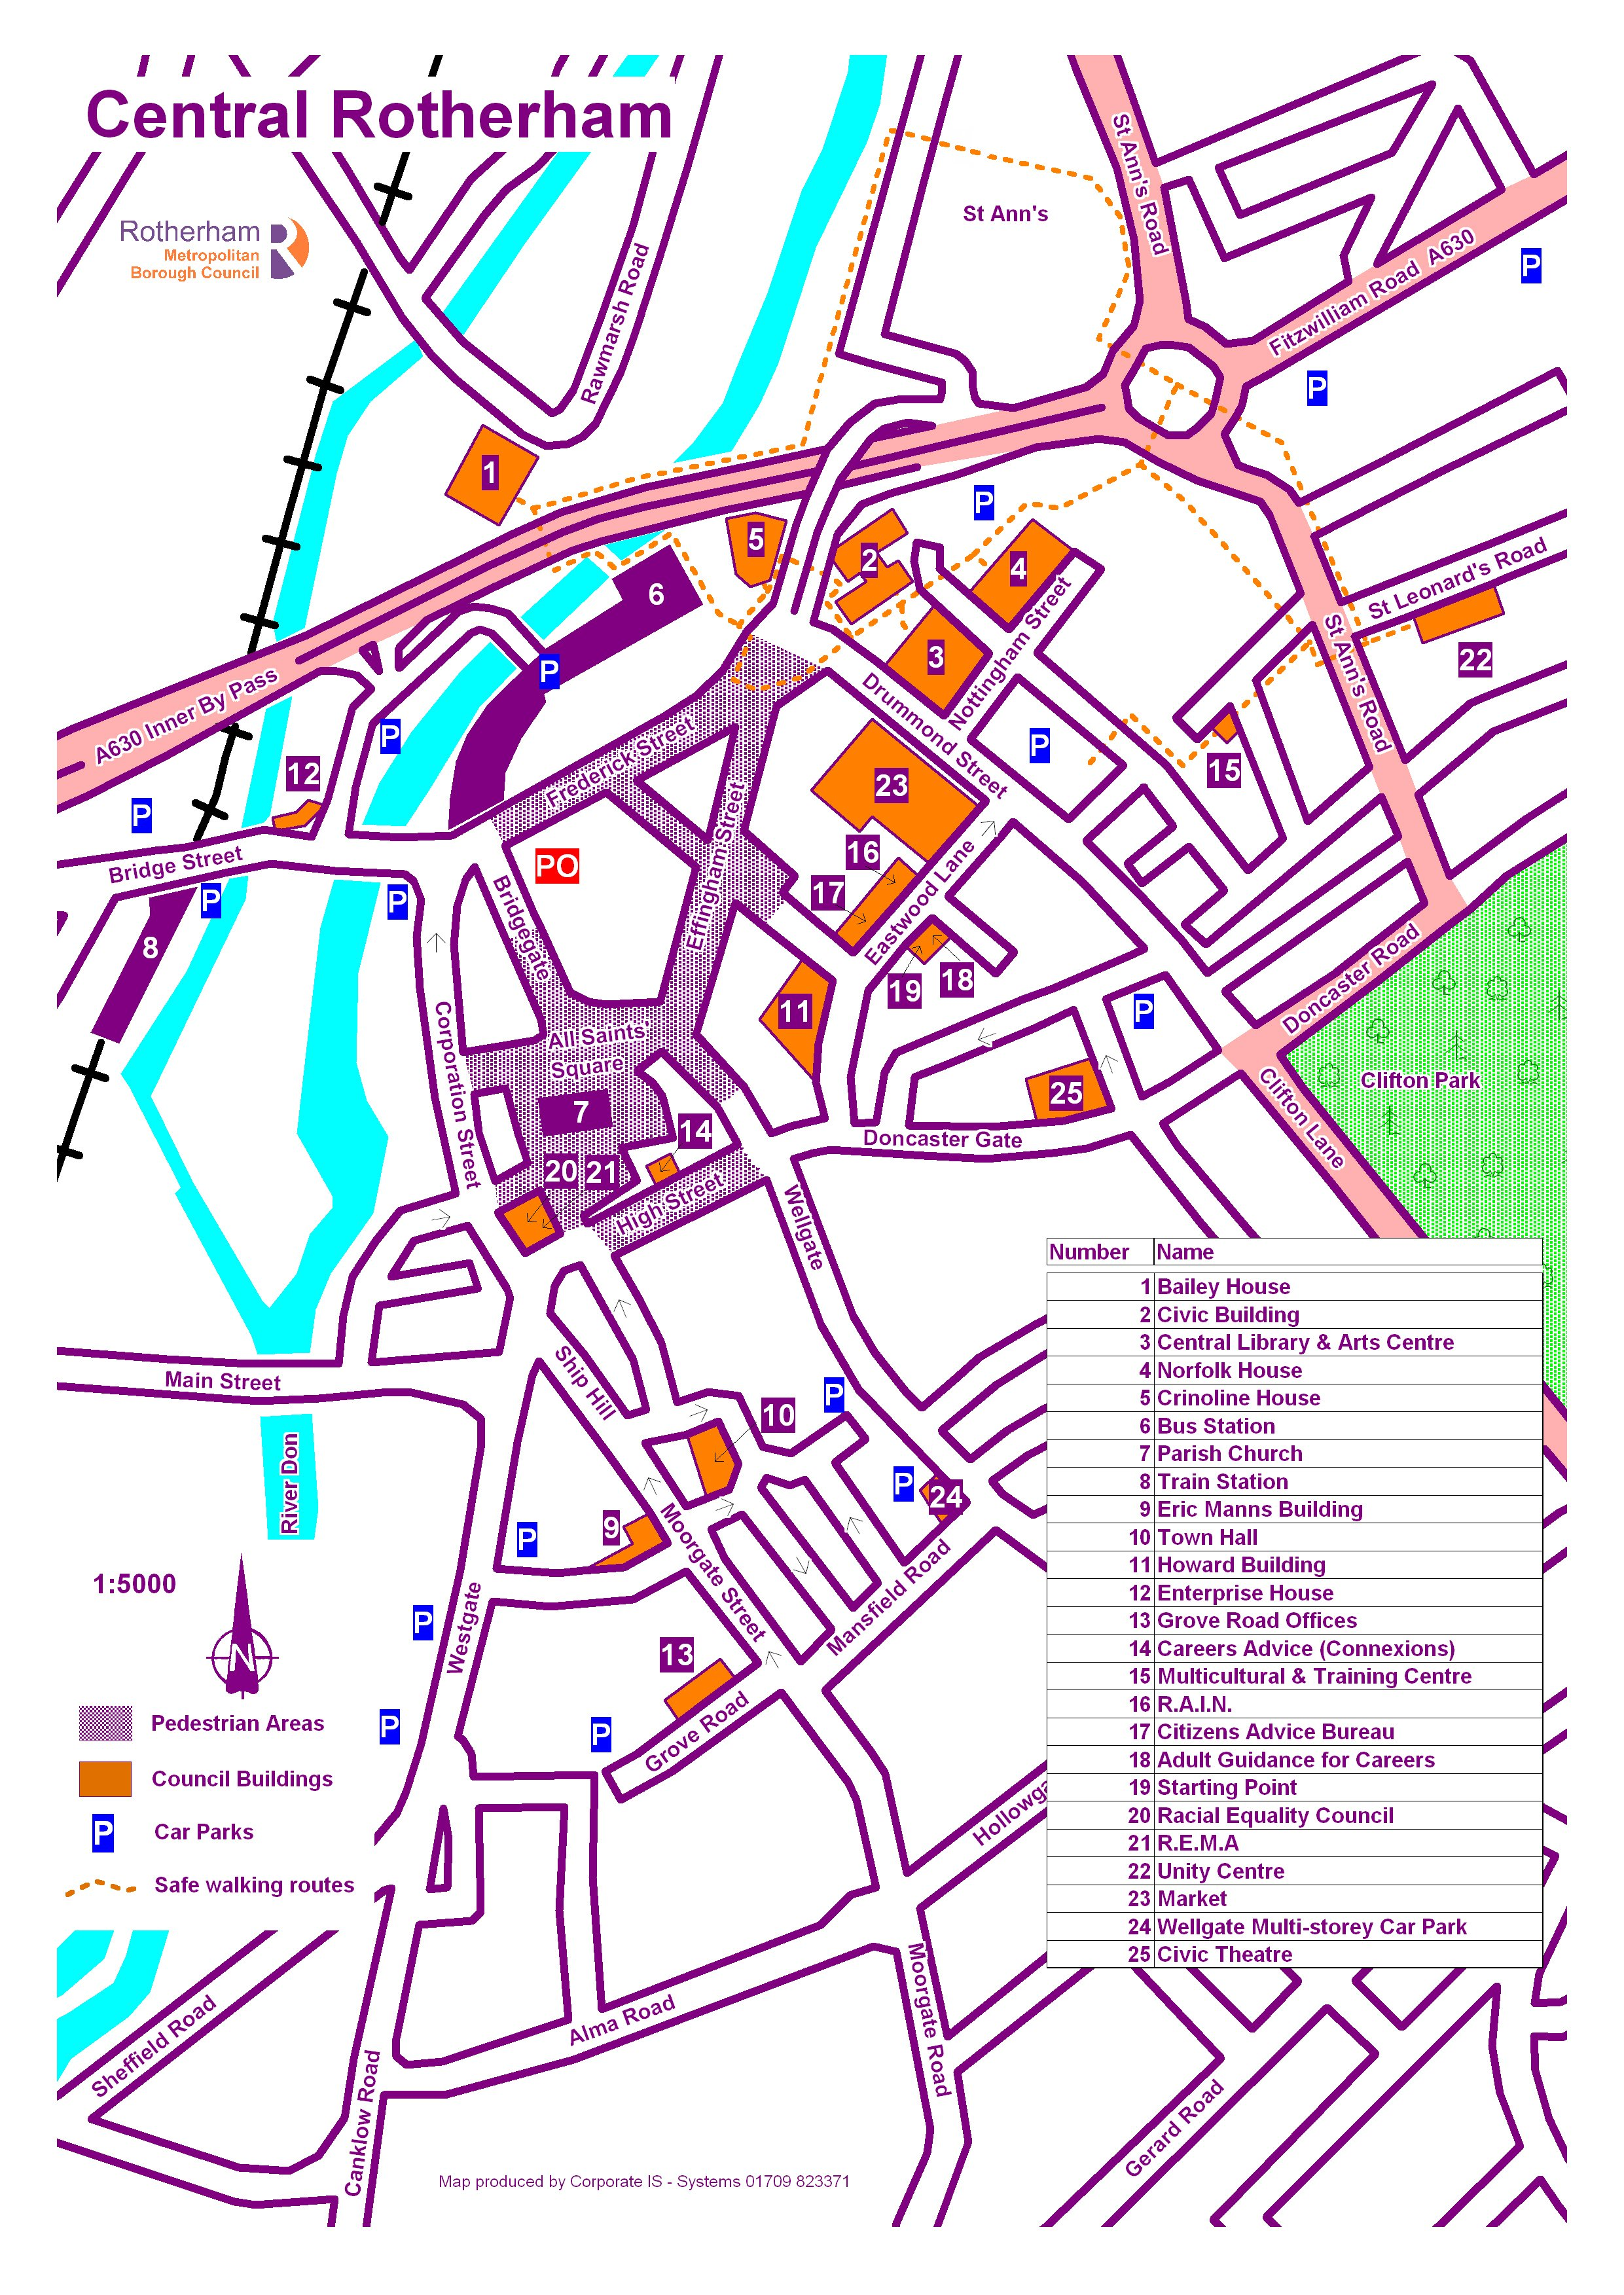 Central Rotherham Map Rotherham South Yorkshire England mappery